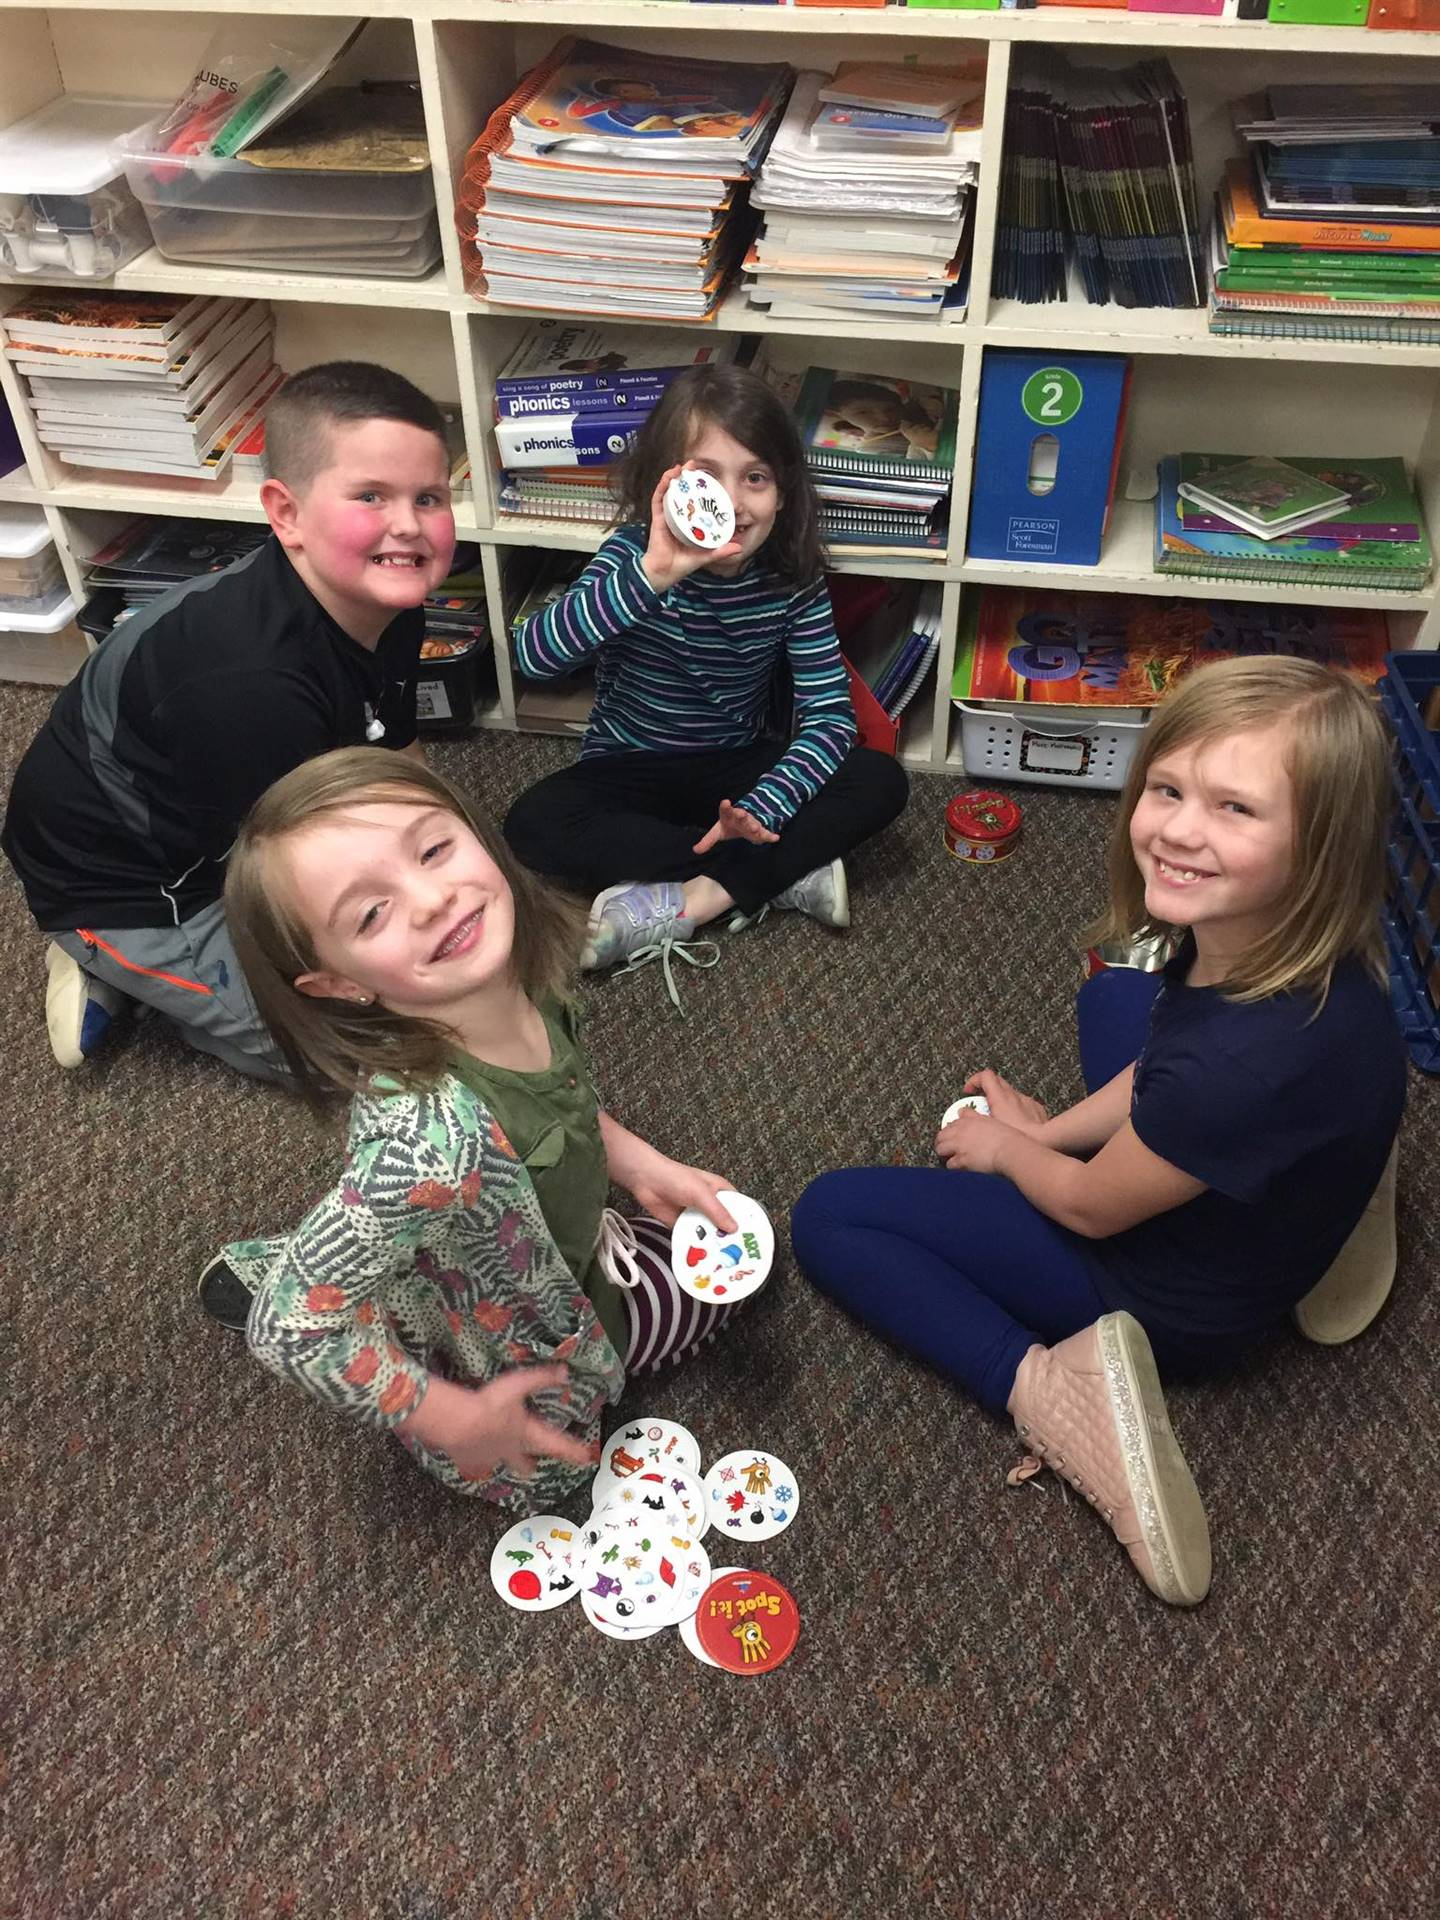 Celebrating the 100th Day of School with 100 minutes of play!